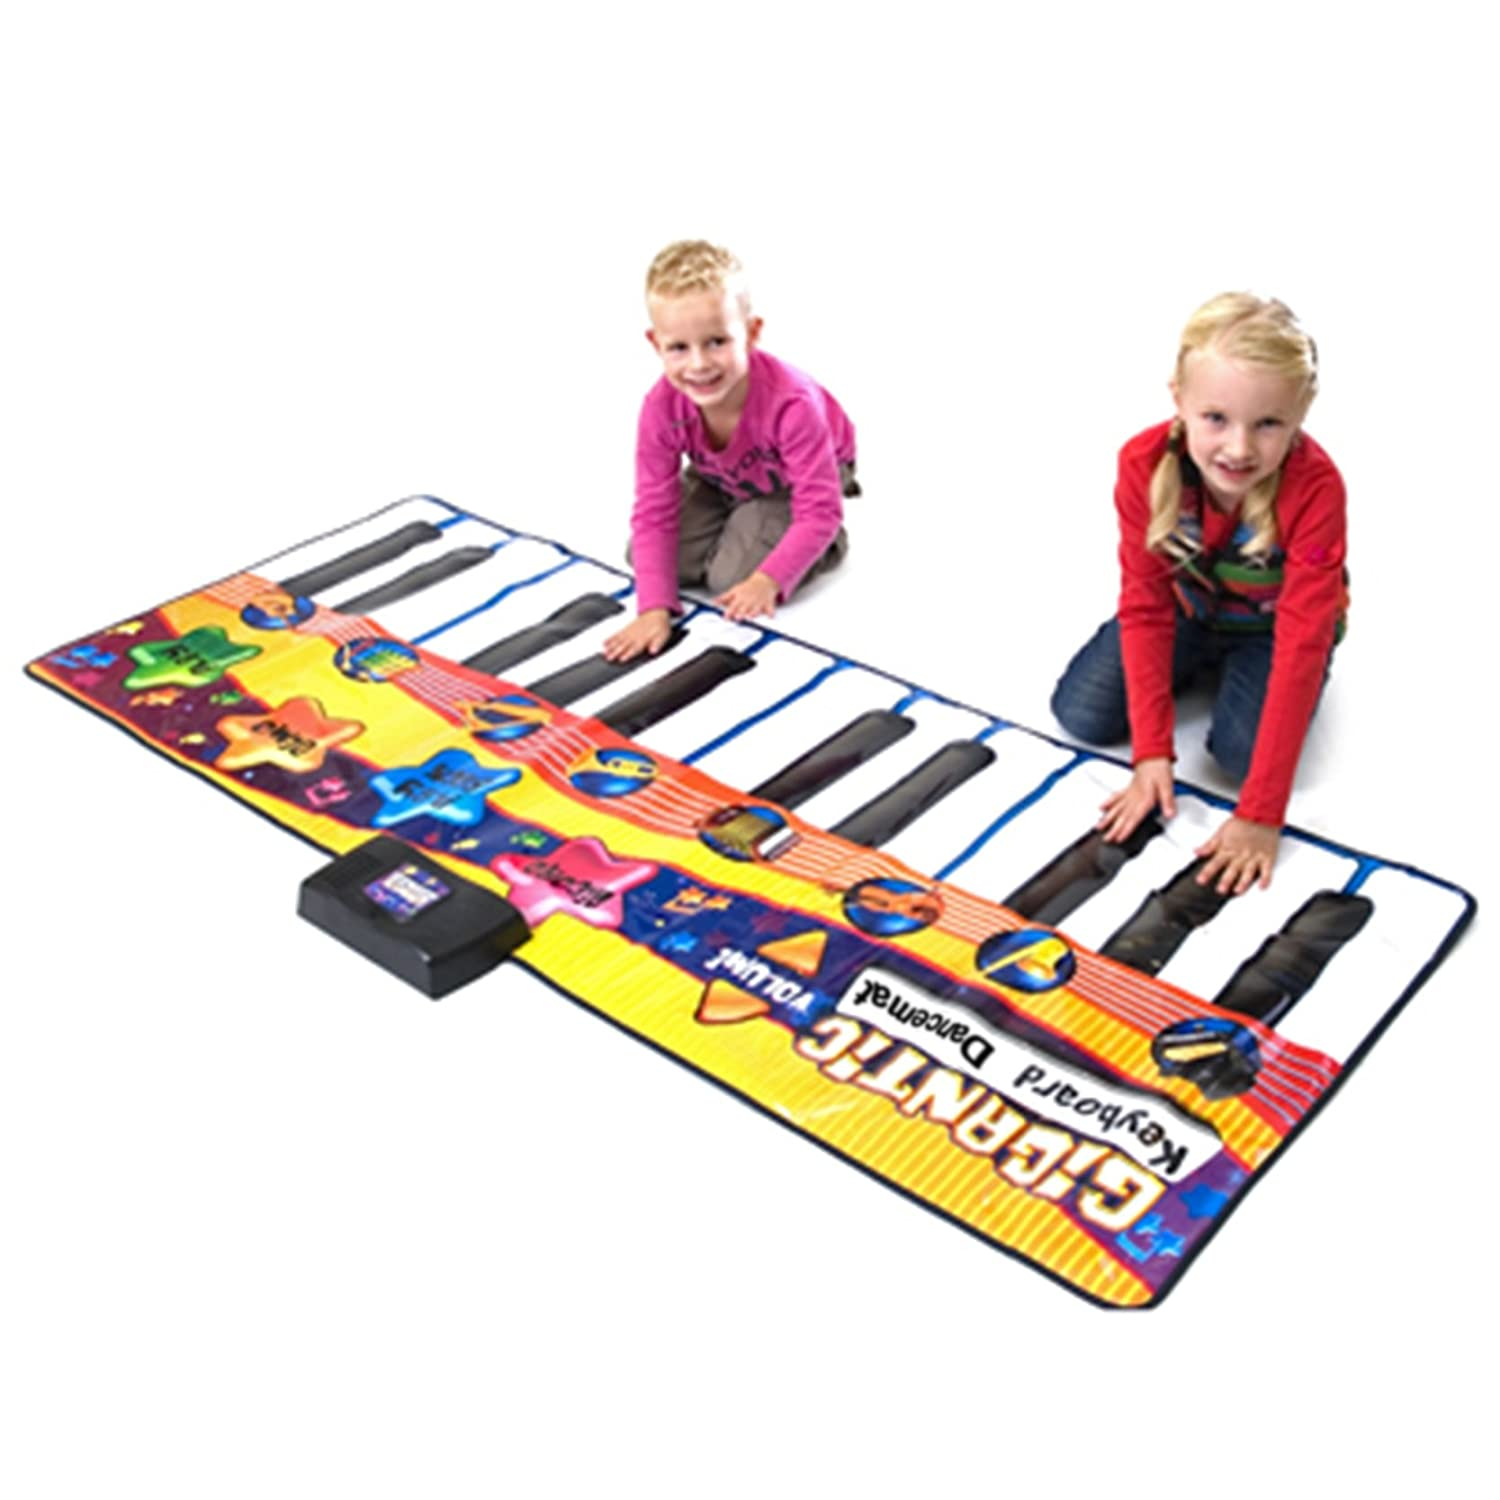 Top 10 Best Piano for Toddlers Reviews in 2021 19